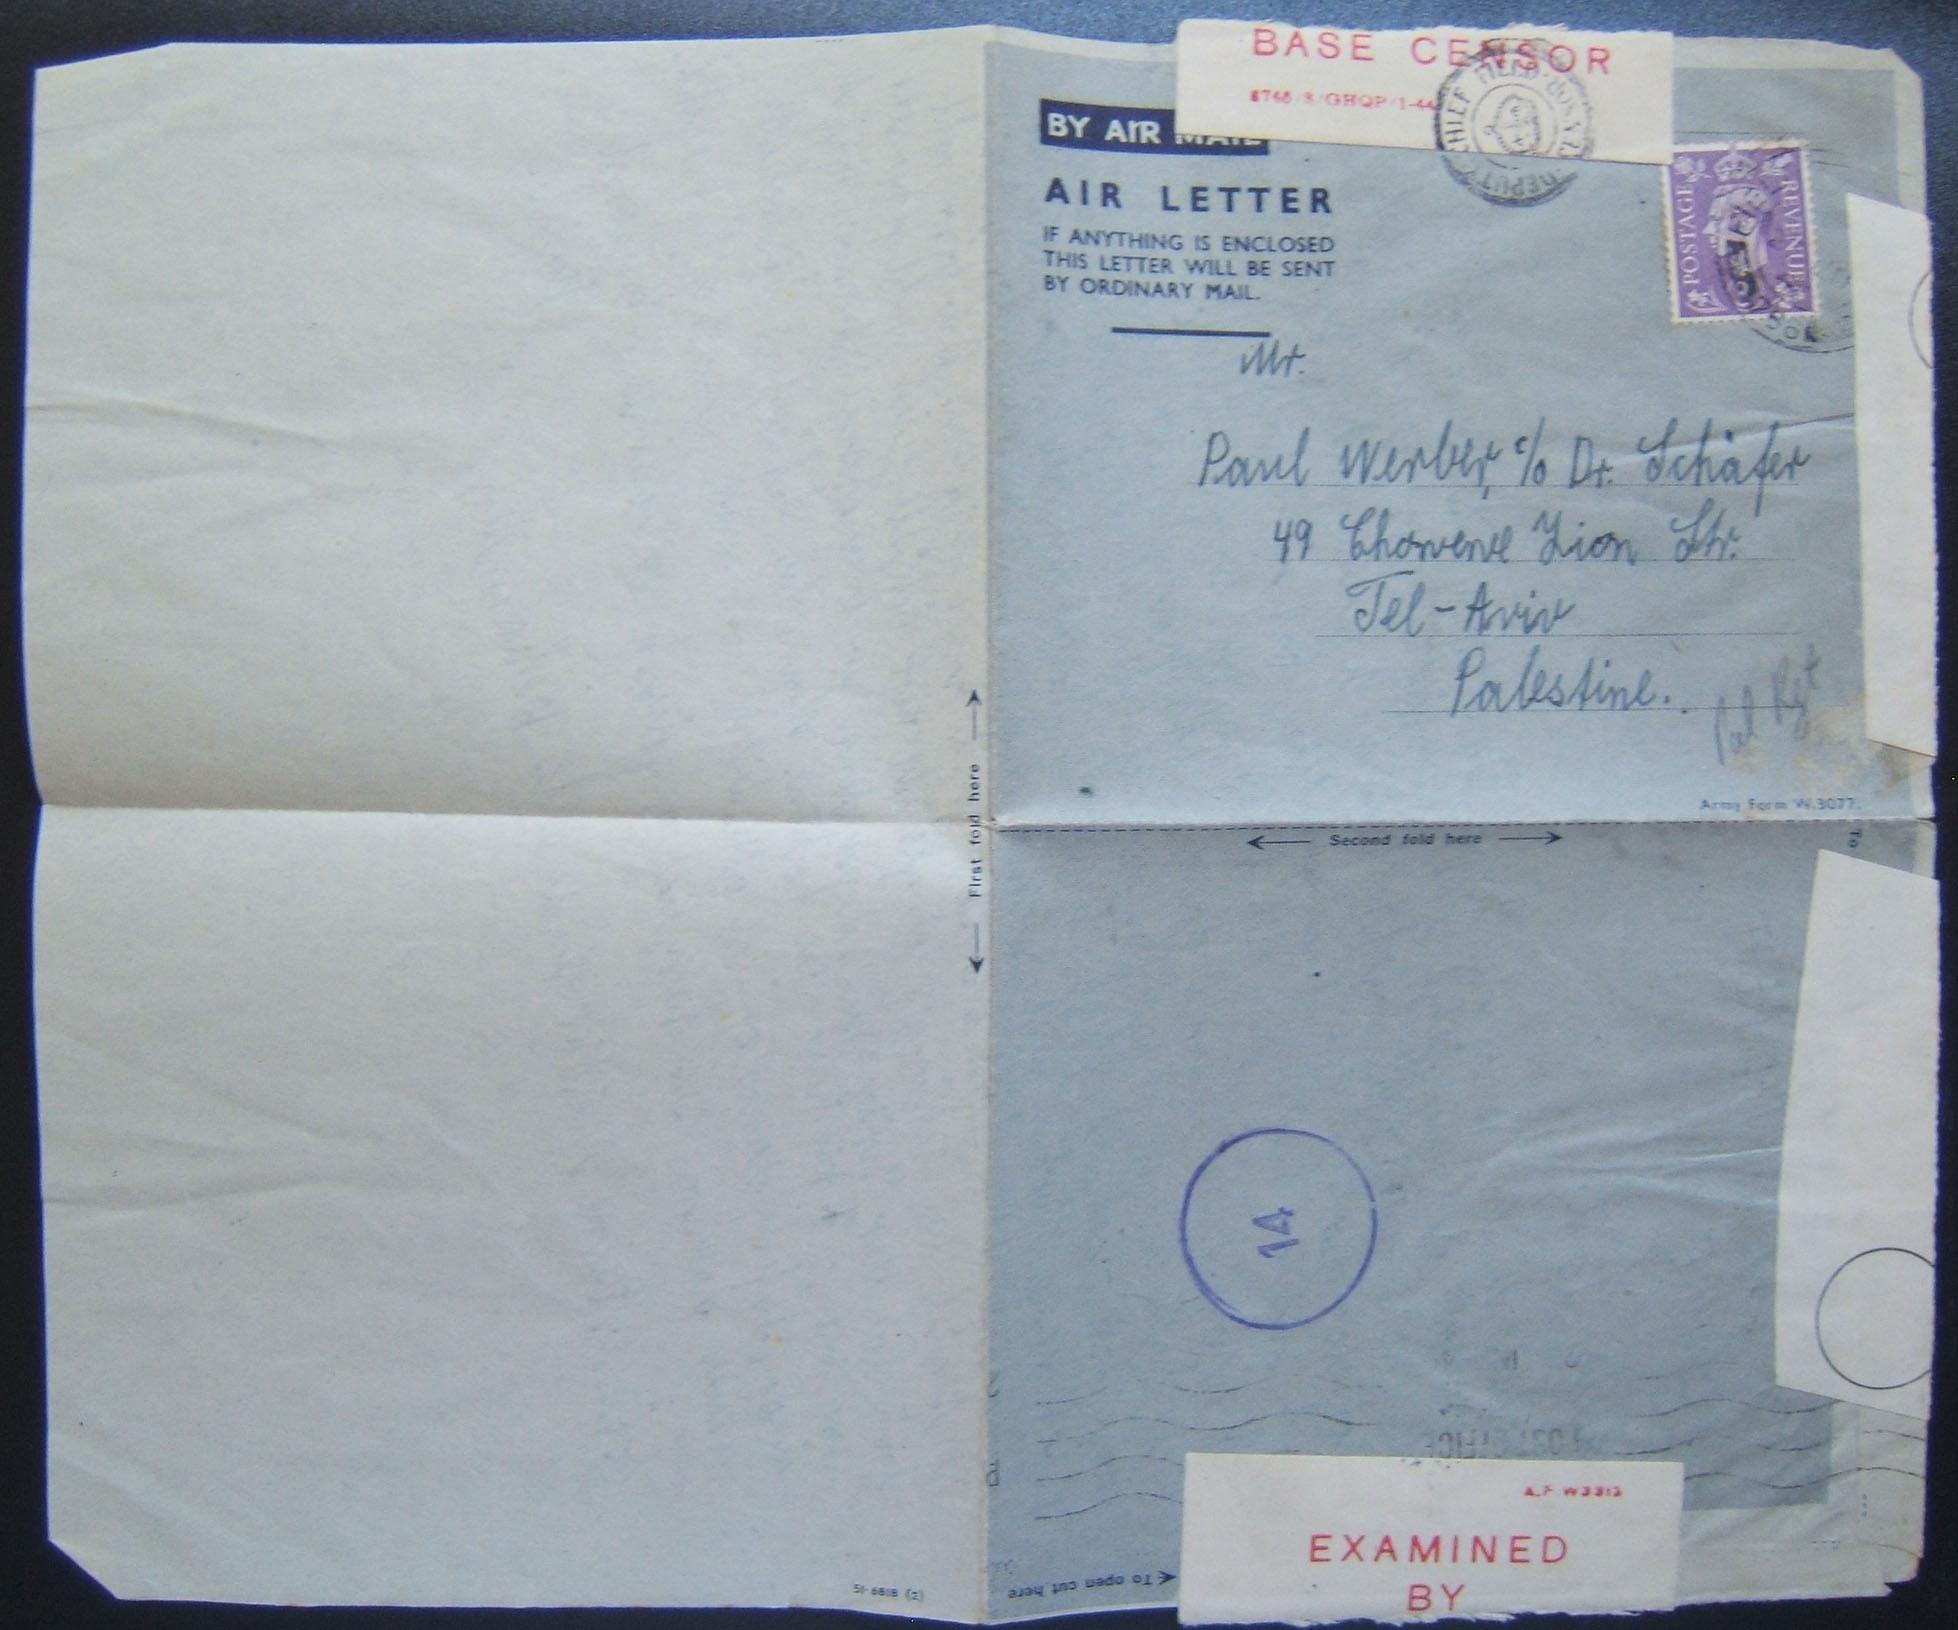 Jewish Brigade mail: army airmail air letter franked 3d ex FPO 766 (Genoa, Italy) to TEL AVIV, 23 JU 45; opened and resealed by base censor; with machine cancellation on back, and